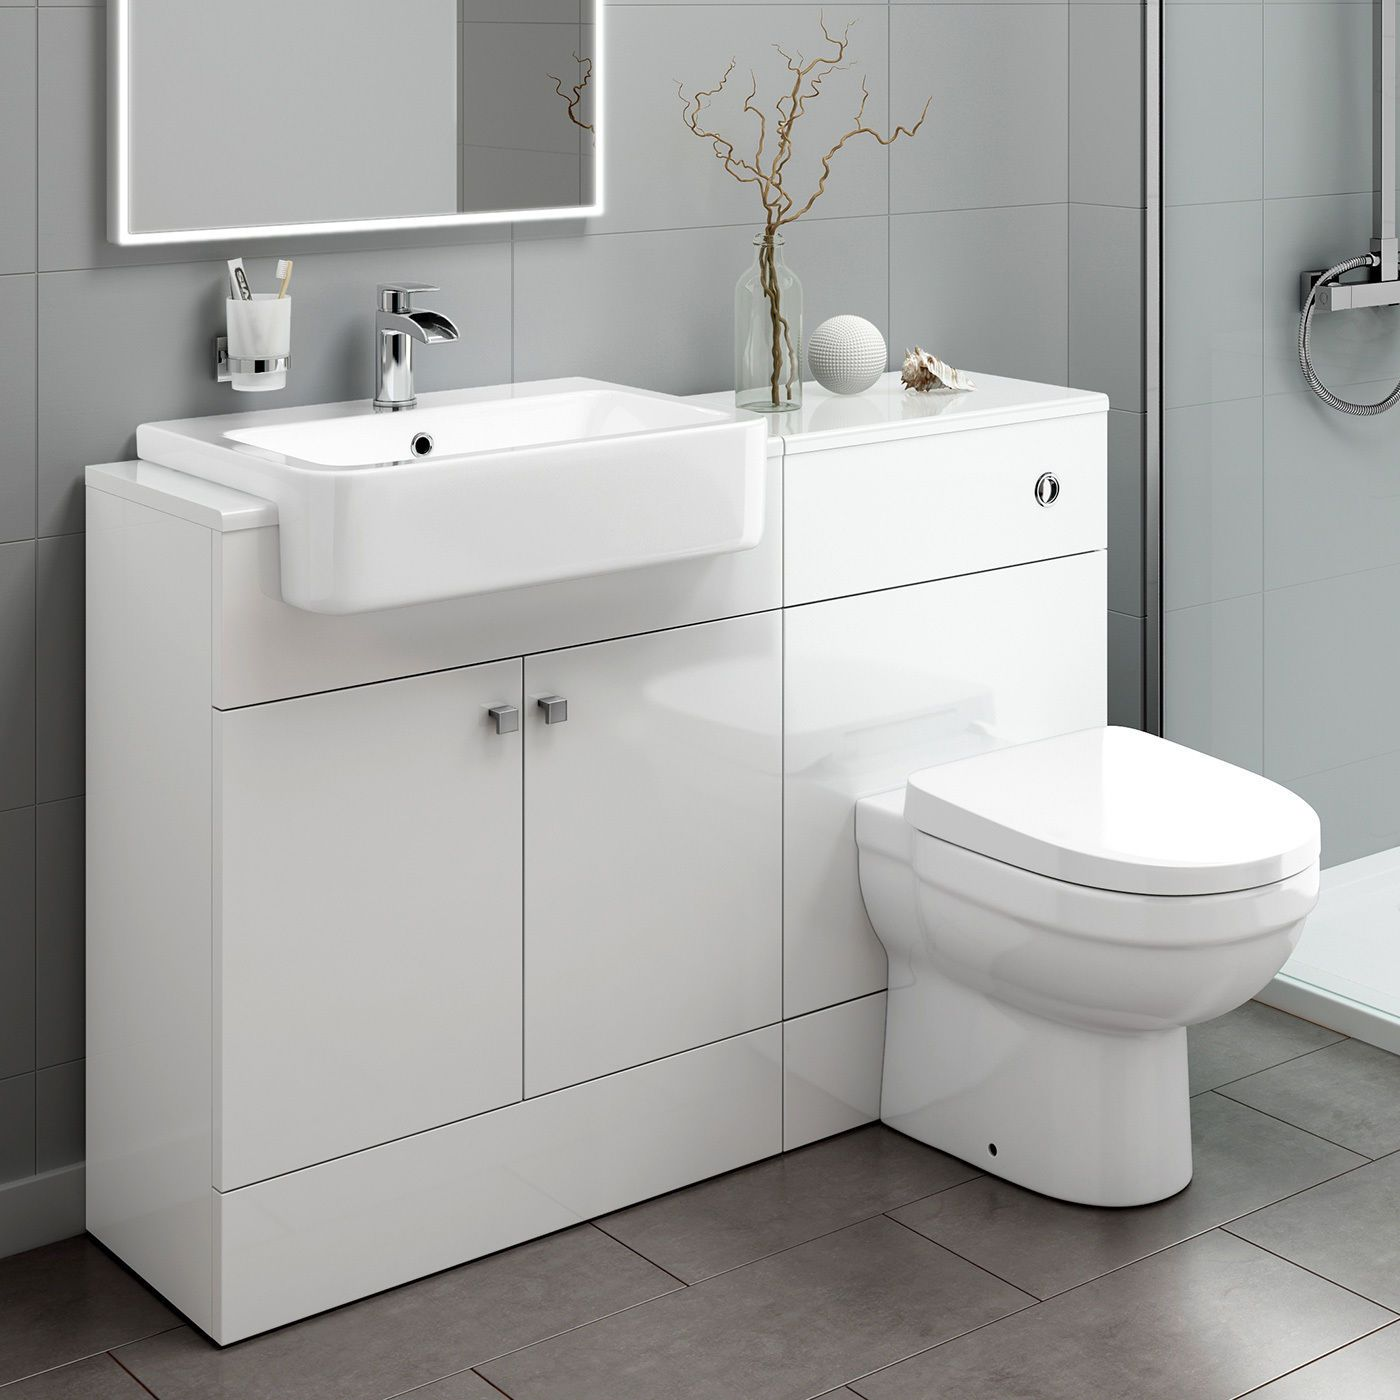 This Toilet And Sink Vanity Storage Unit Features A Built In Toilet And White Ceramic Bath White Bathroom Furniture Toilet And Sink Unit Bathroom Storage Units